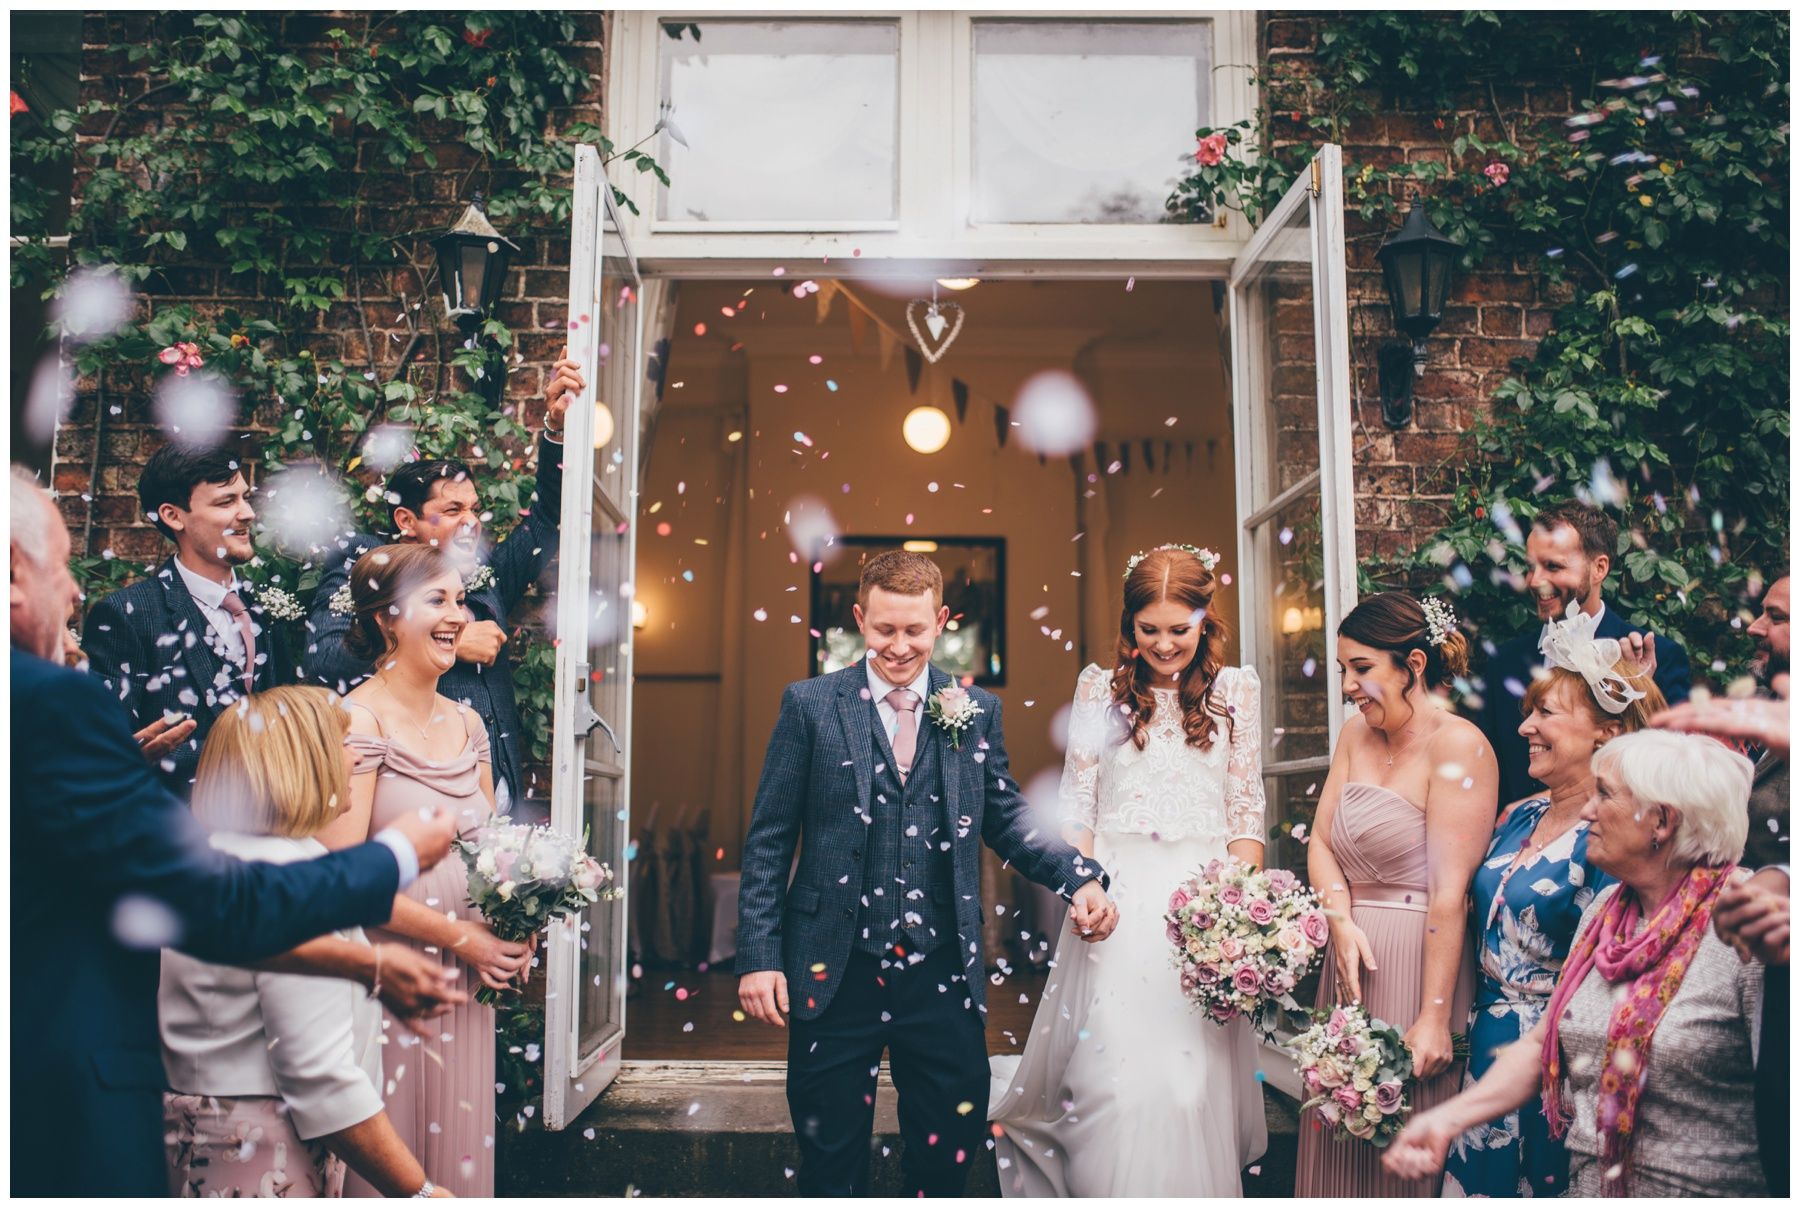 Bride and groom get beautiful confetti thrown at them at Trafford Hall.